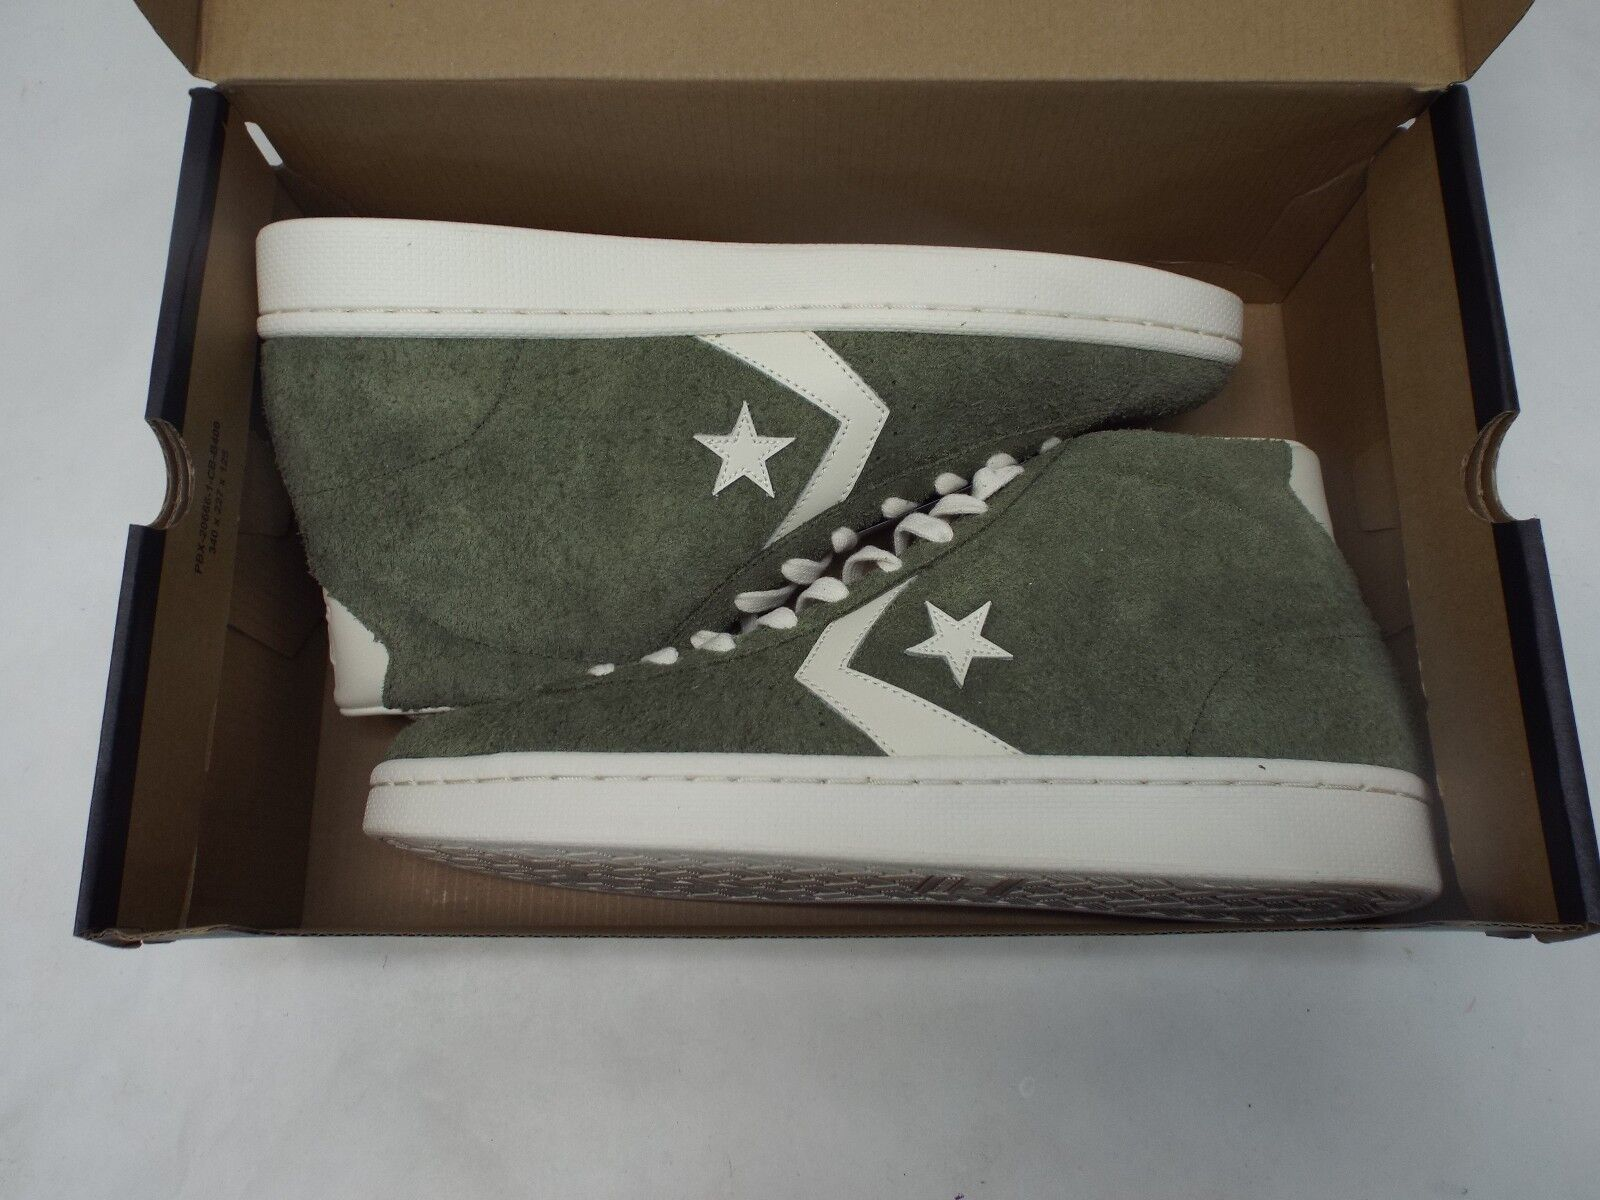 New  Herren Mid 9.5 Converse Pro Leder Mid Herren Medium Olive Star Player Schuhes 157690C 8 7de790